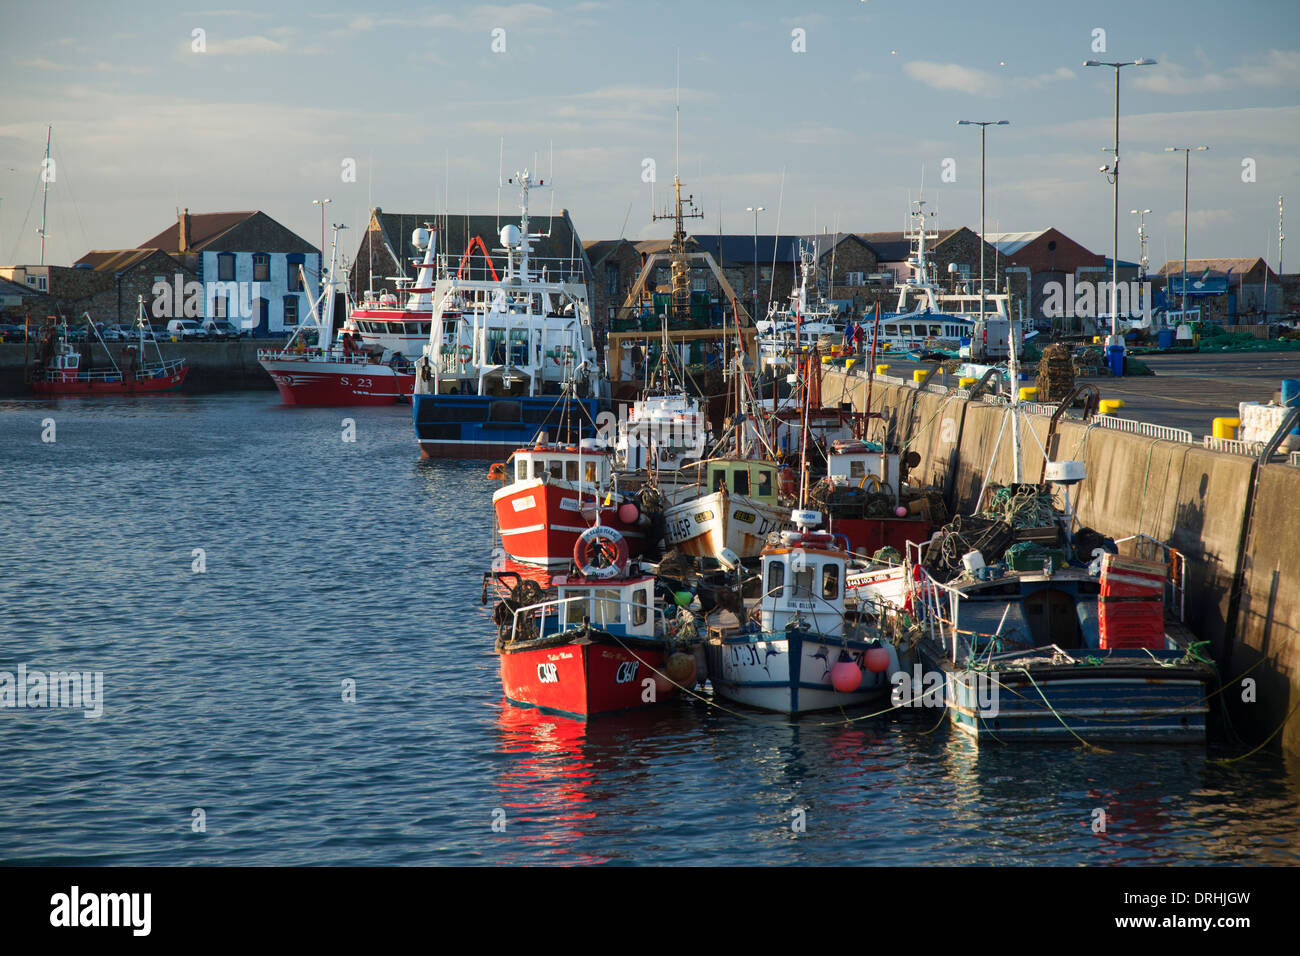 Fishing trawlers moored in Howth harbour, County Dublin, Ireland. - Stock Image